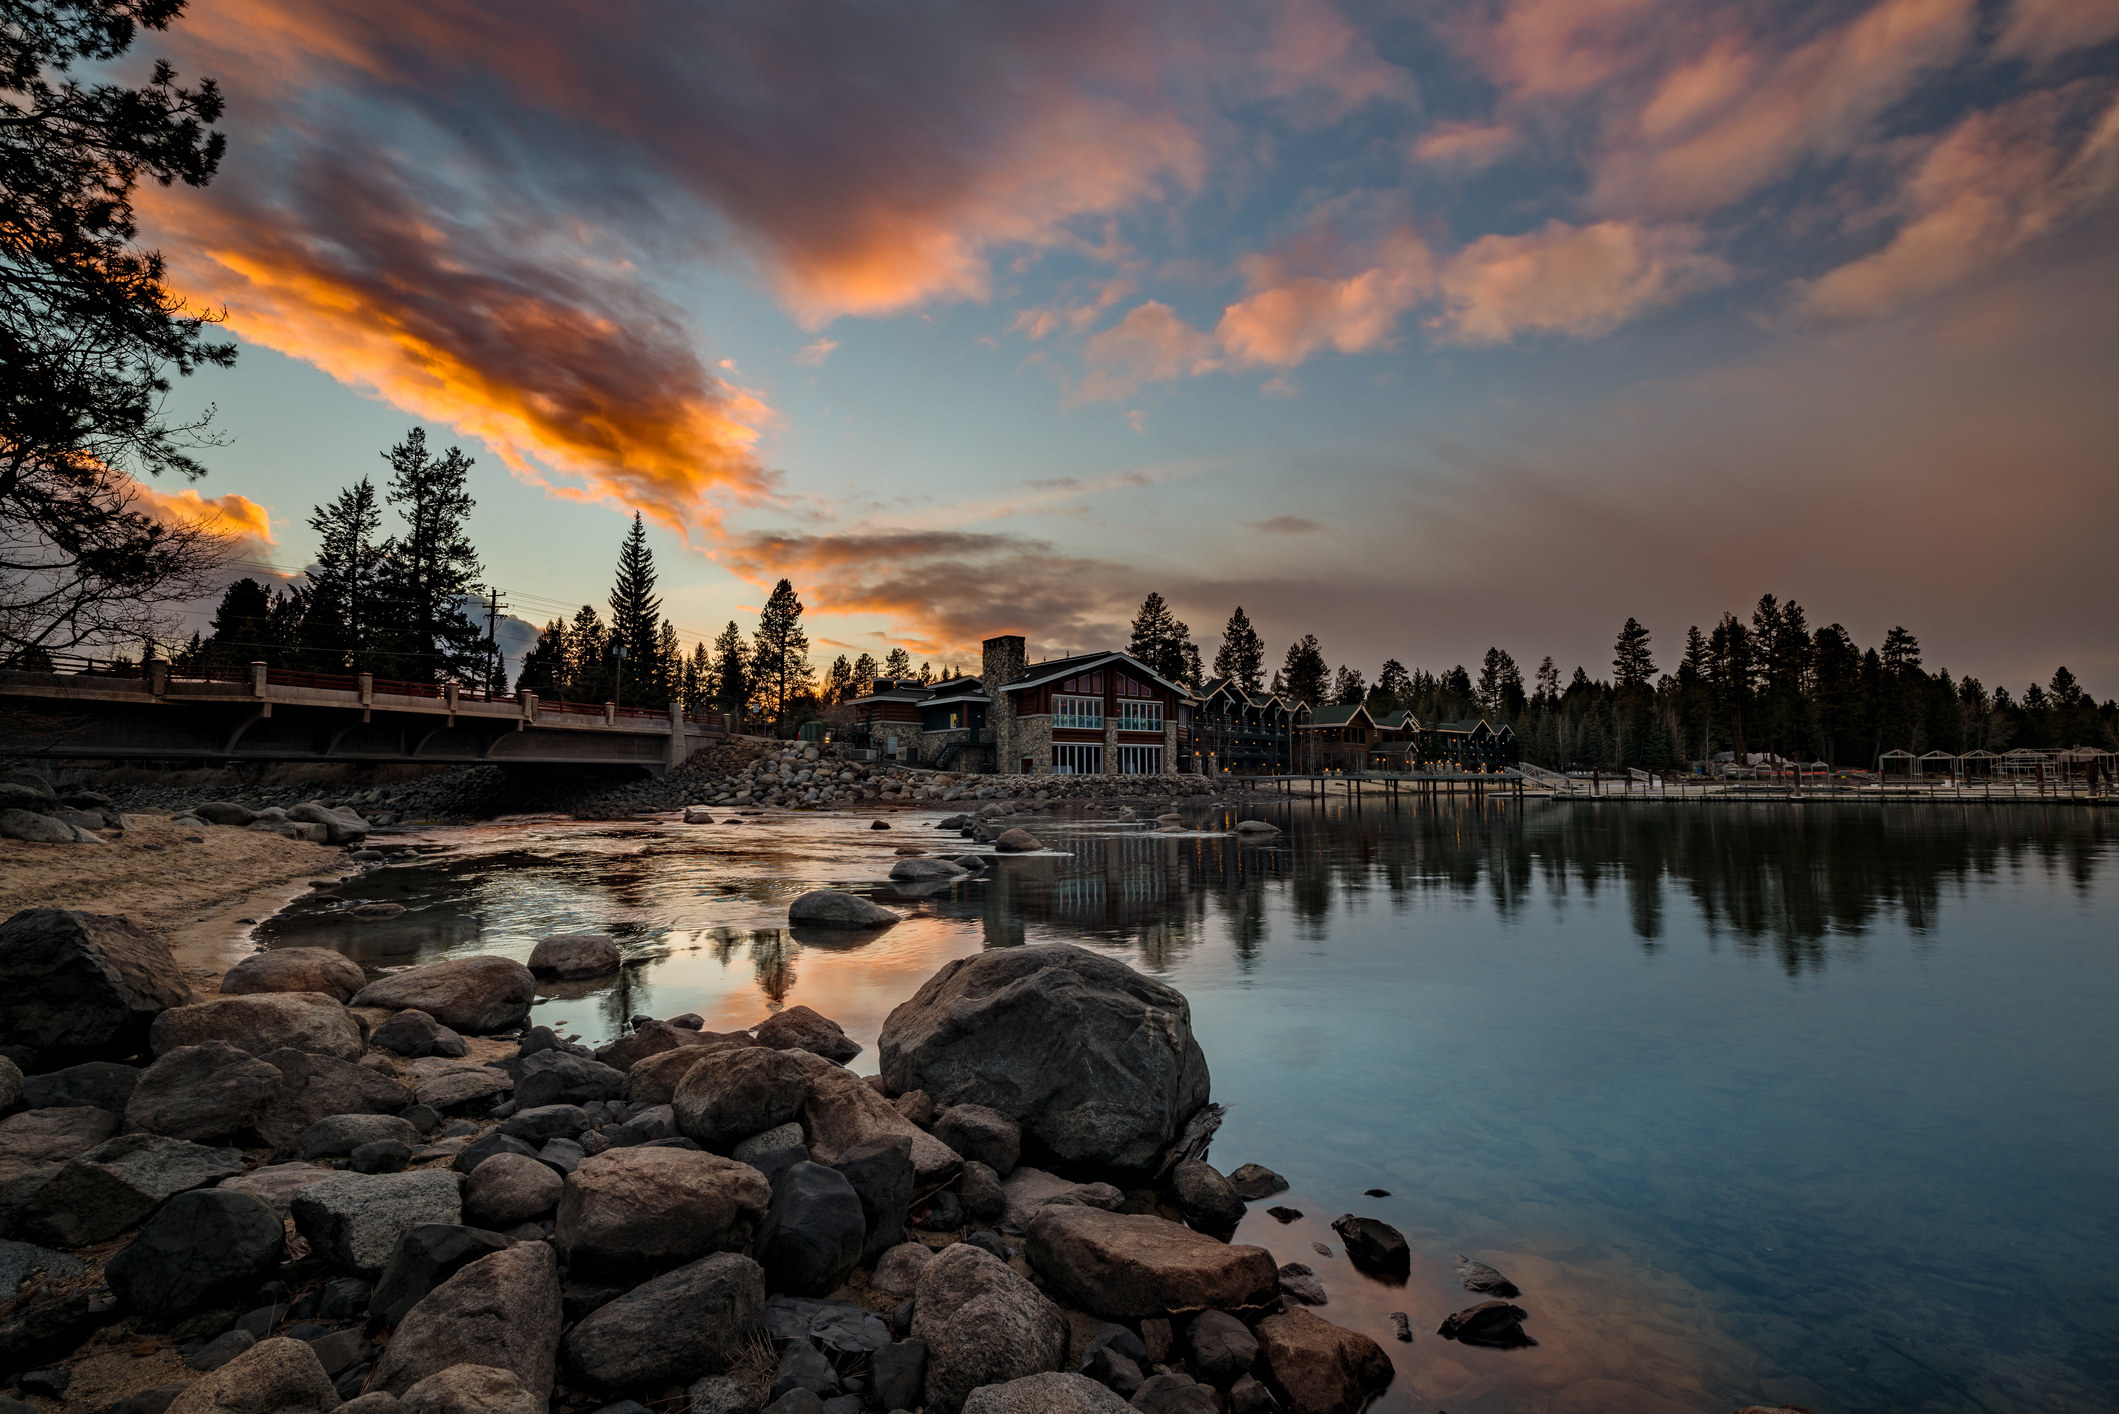 Sunset on Payette Lake with hotel and cloud reflections in the water shoreline